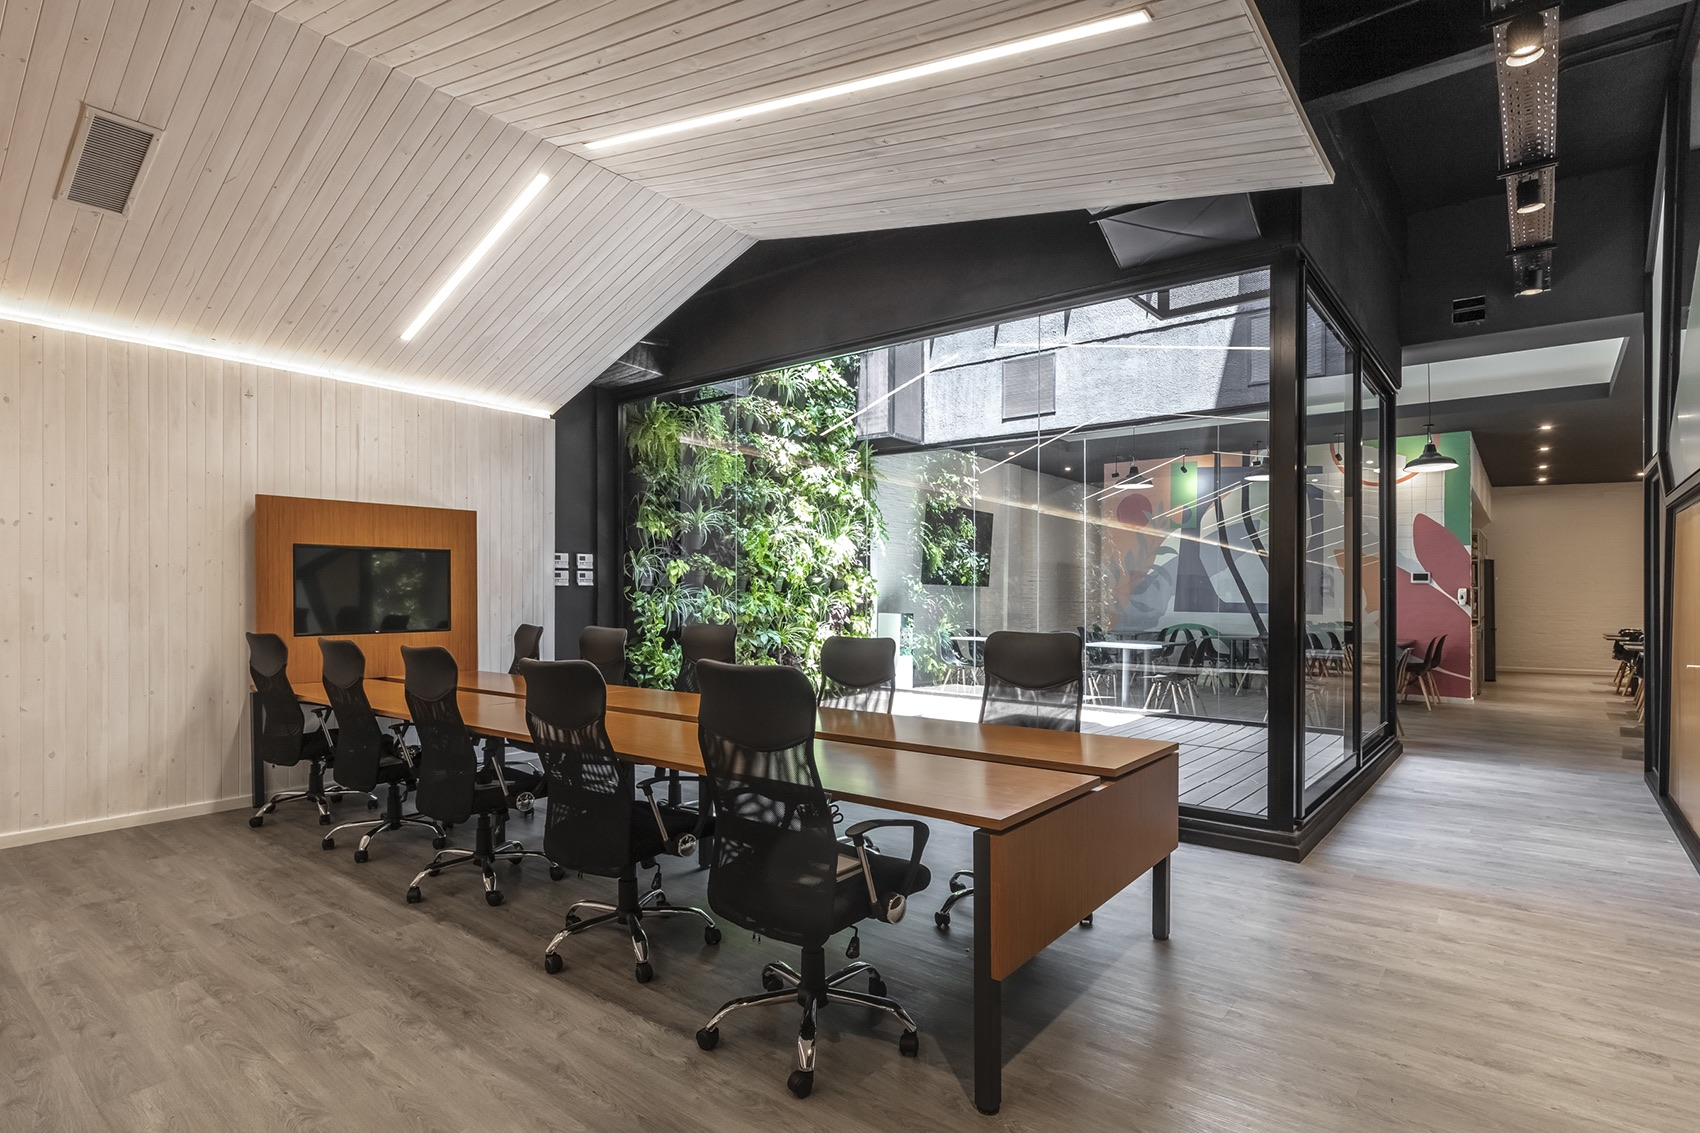 uala-office-buenos-aires-12